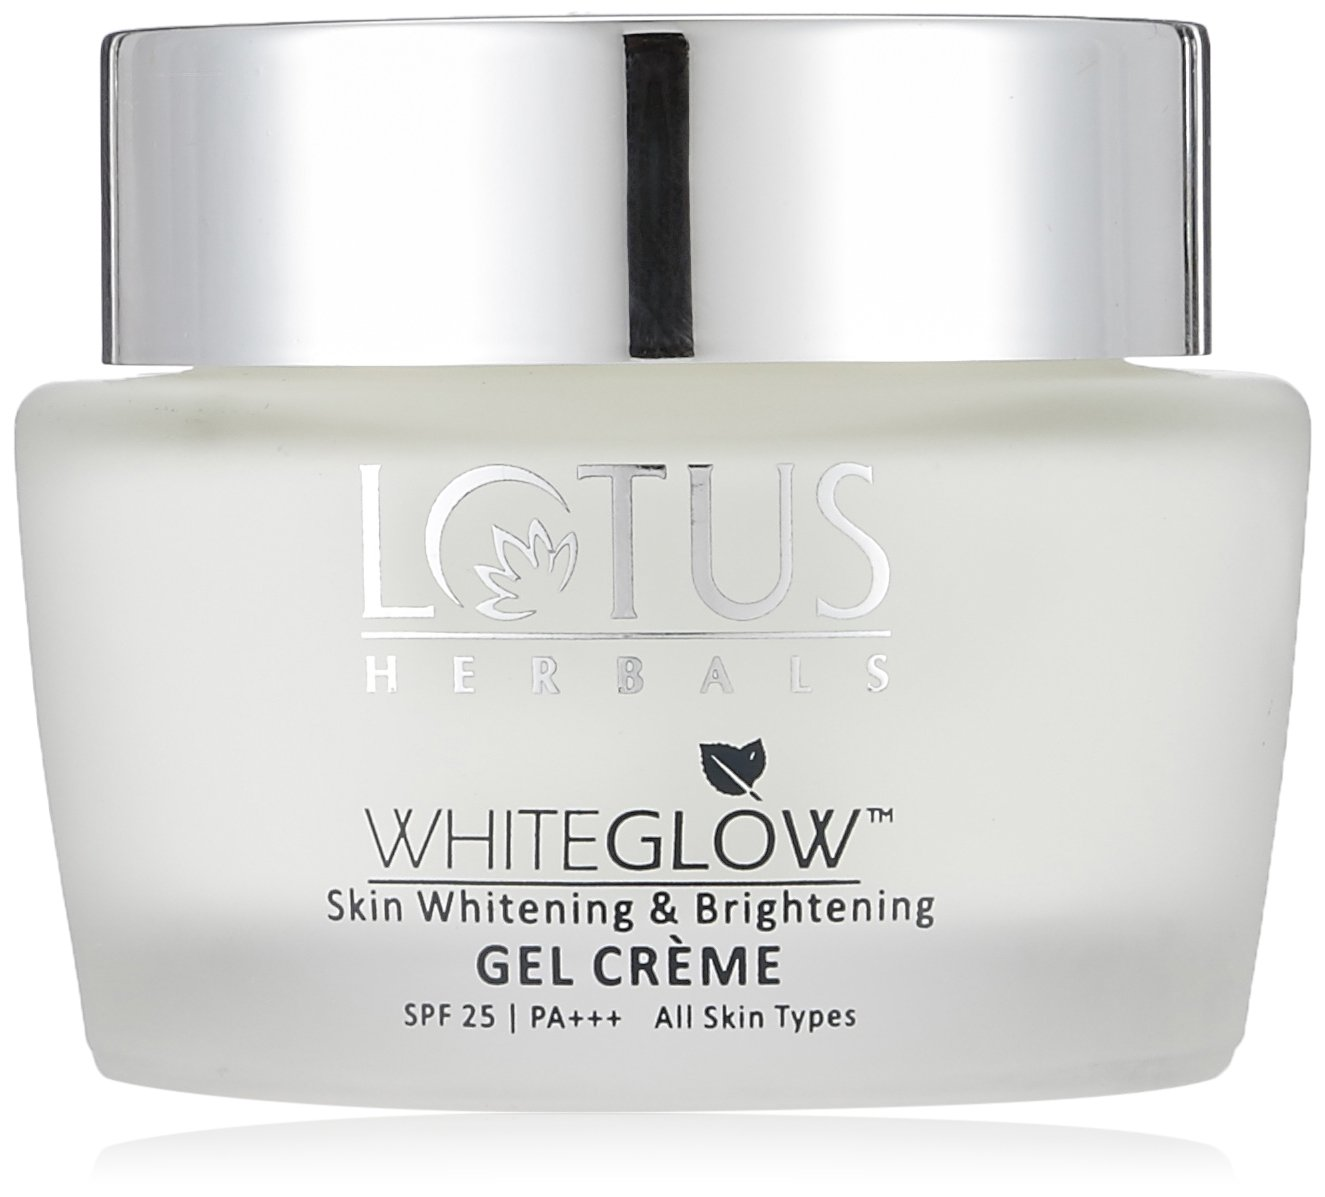 Get Summer Ready!! Upto 25% Off On Beauty Products By Amazon | Lotus Herbals Whiteglow Skin Whitening And Brightening Gel Cream SPF-25, 60g @ Rs.285